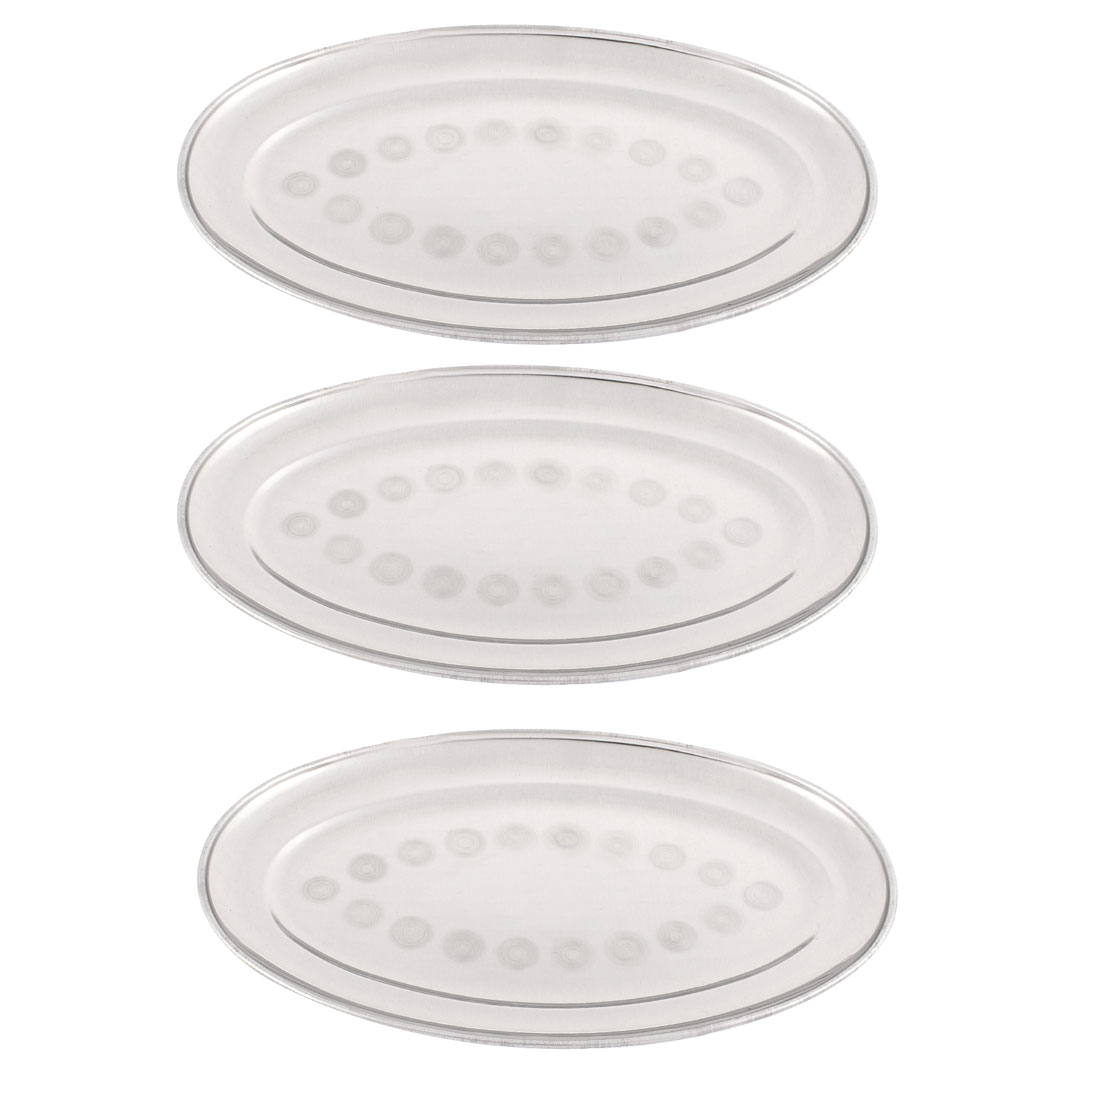 "Oval Shaped Table Dinner Dish Plate 10"" Length 3PCS"